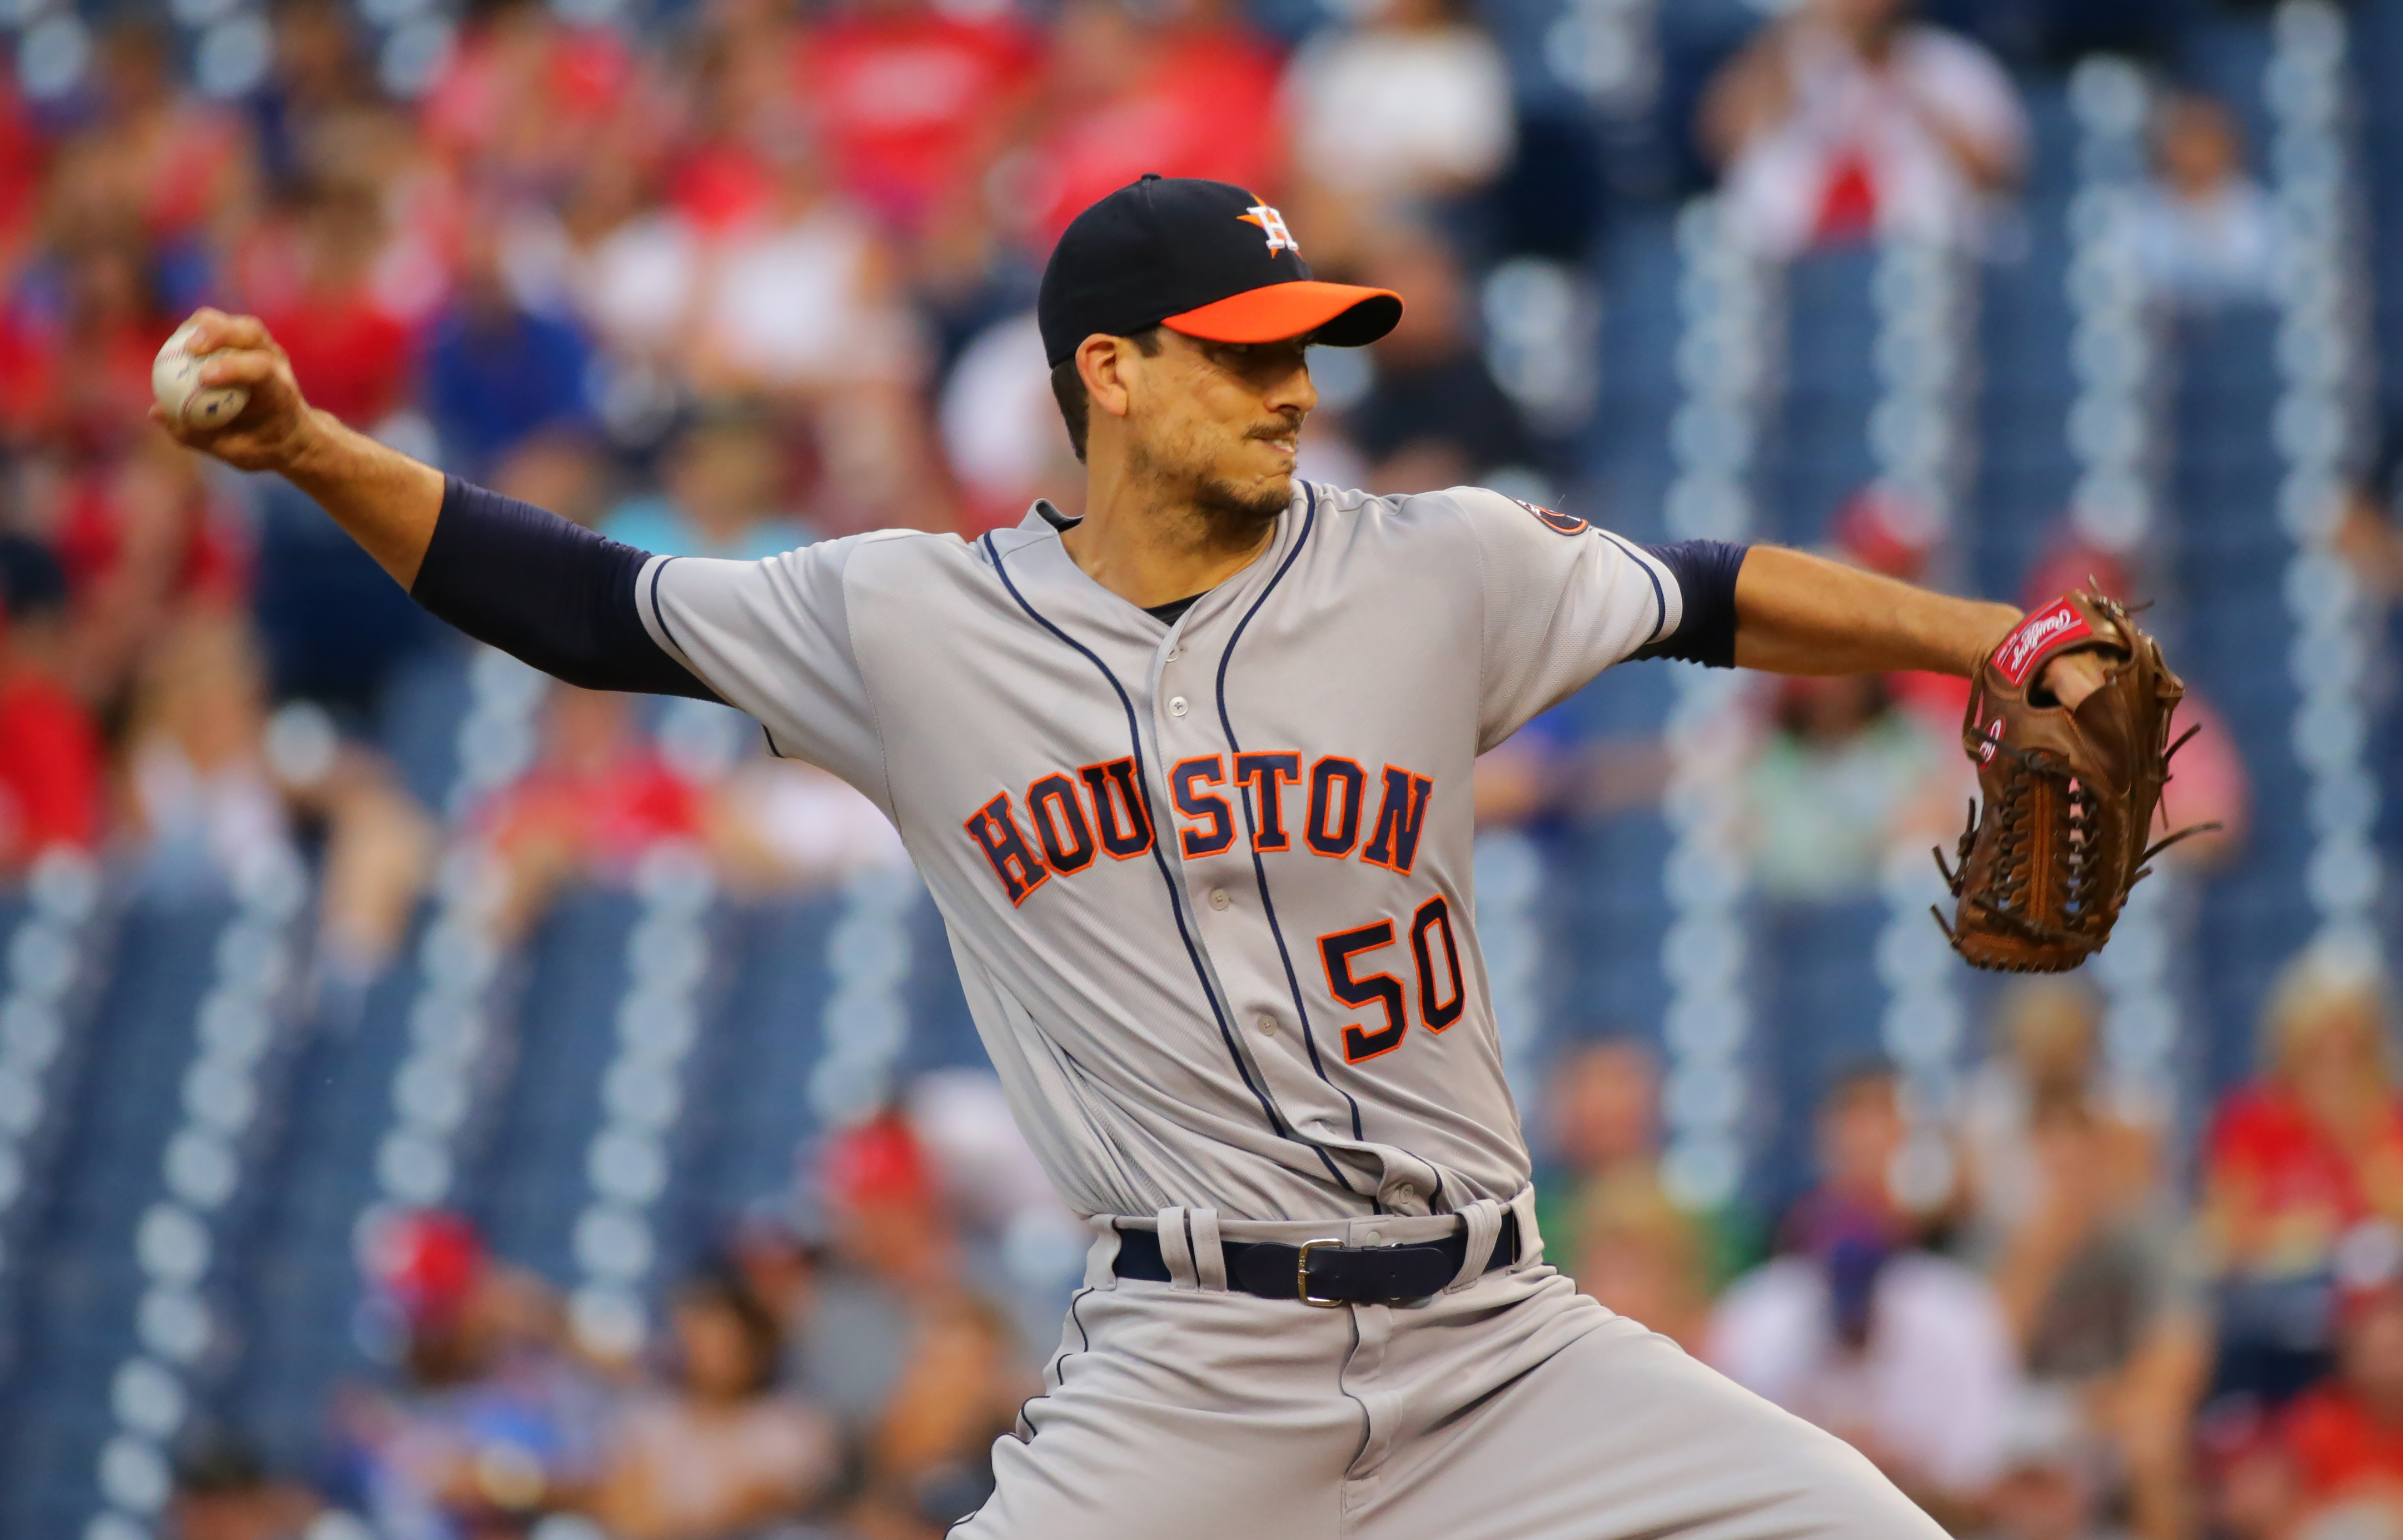 astros charlie morton is pitching like a playoff pitcher https climbingtalshill com 2017 08 06 astros charlie morton is pitching like a playoff pitcher